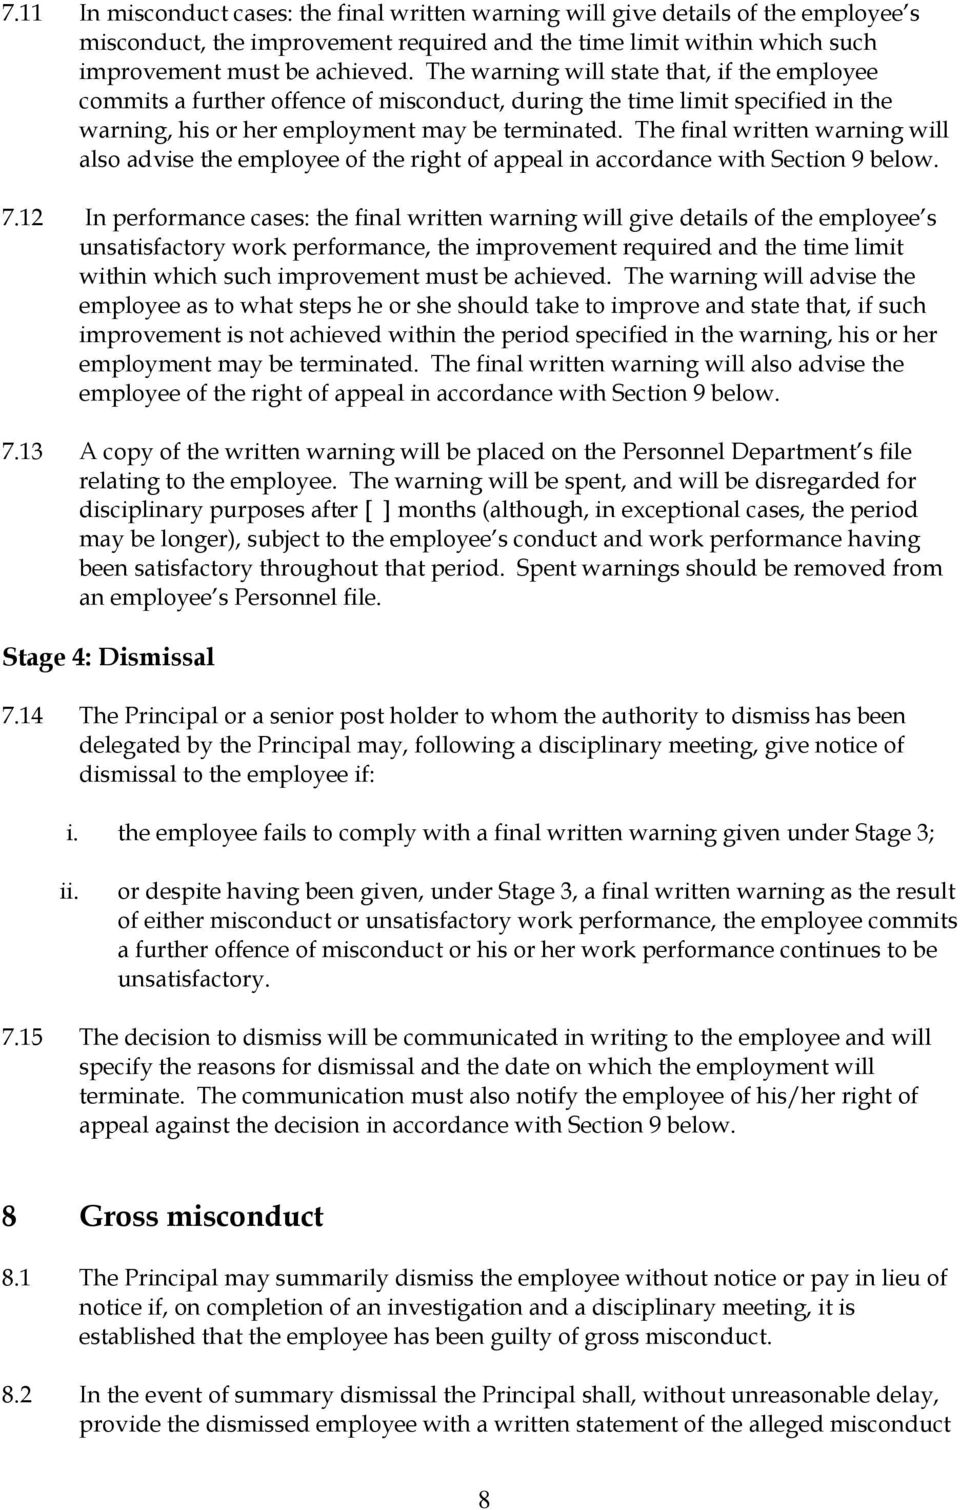 The final written warning will also advise the employee of the right of appeal in accordance with Section 9 below. 7.